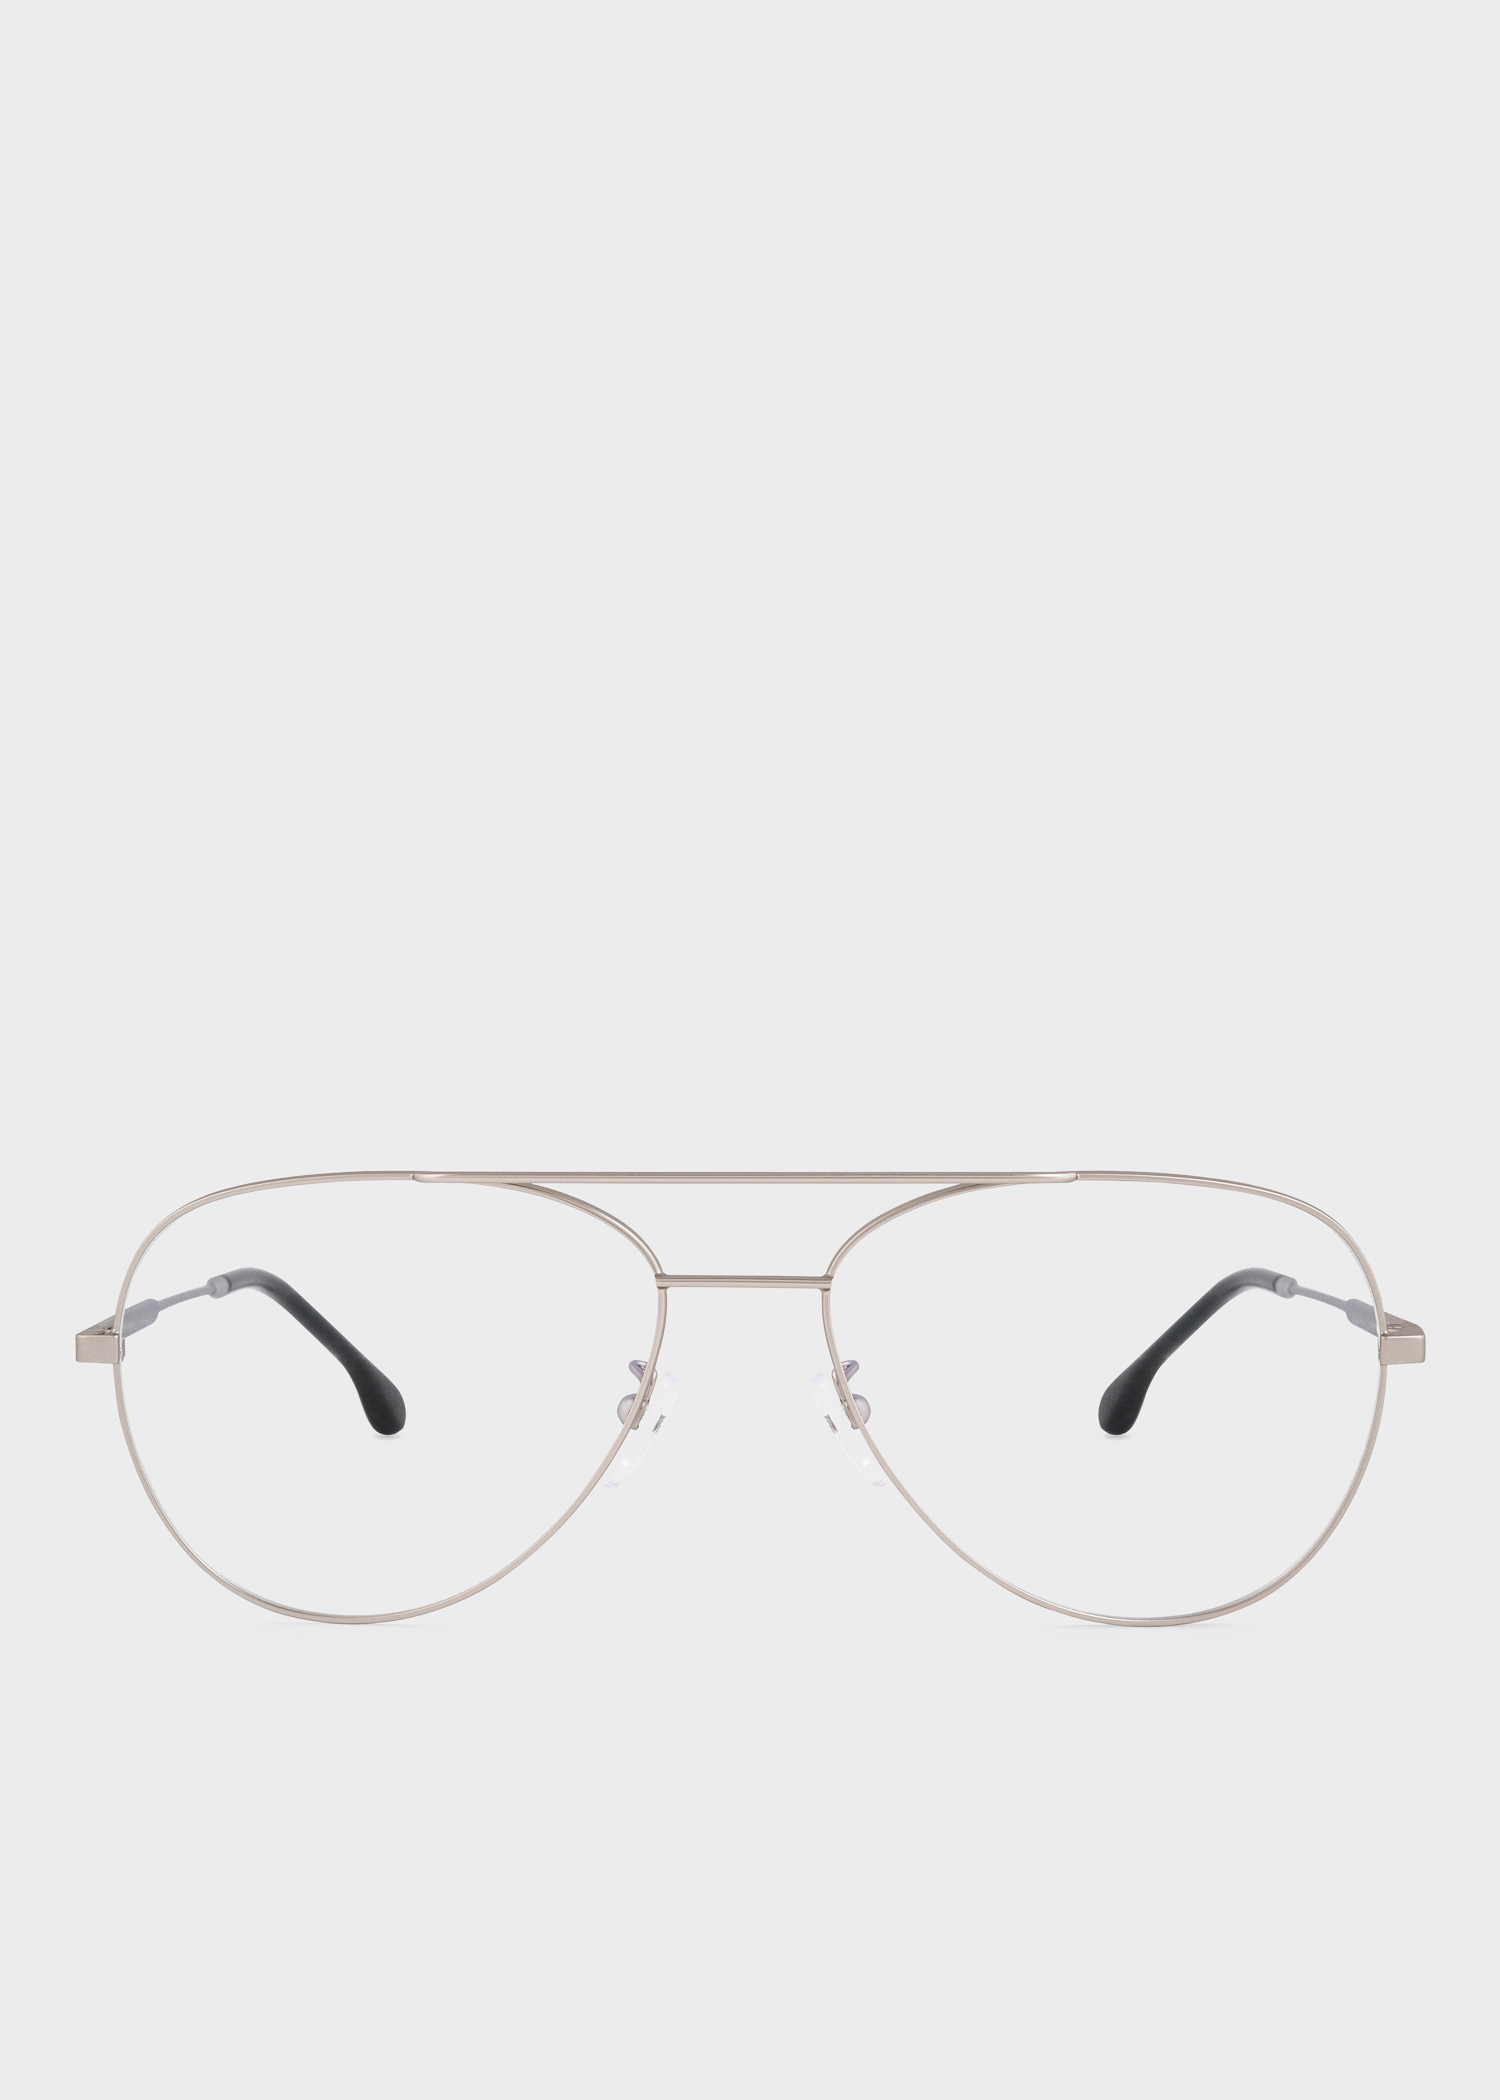 1d7214f6f6 Front view - Paul Smith Matt Silver And Black Ink  Angus  Spectacles Paul  Smith